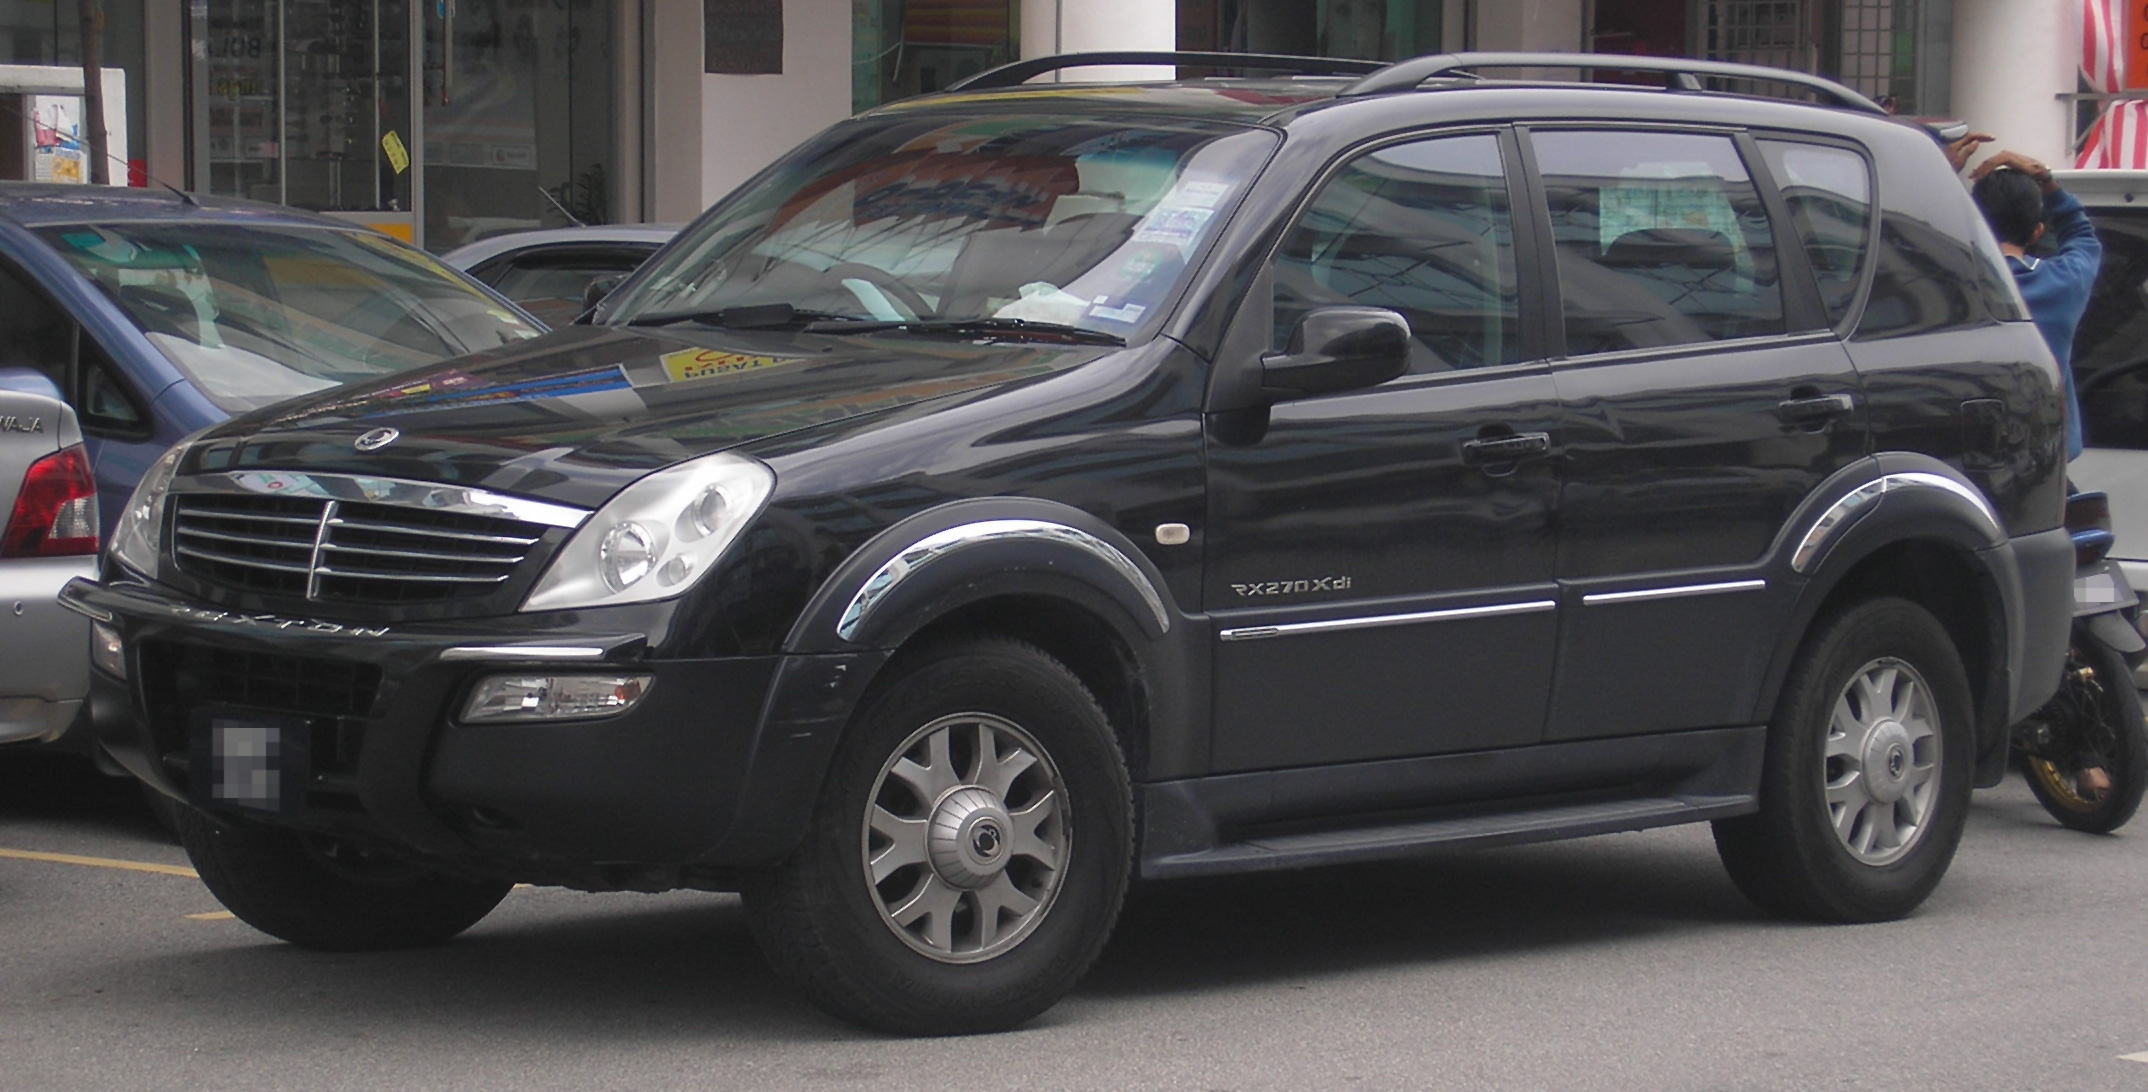 ssangyong kyron 2005 images #7